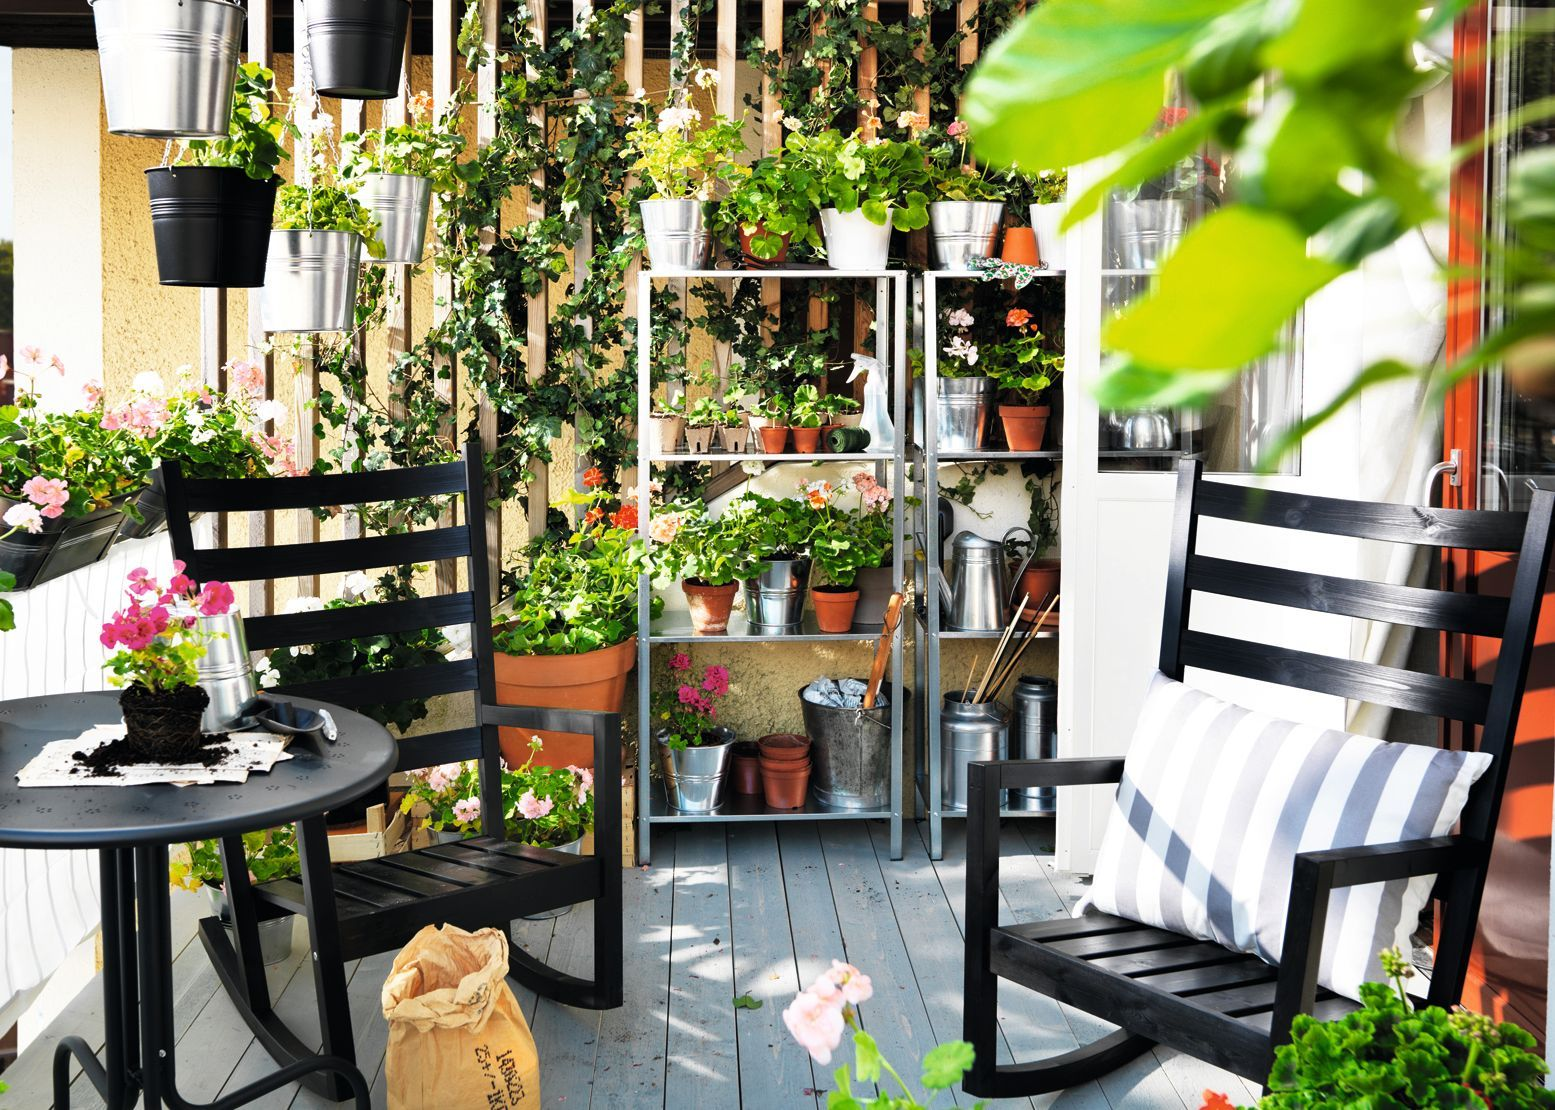 Comment aménager ma terrasse ? (image_4)